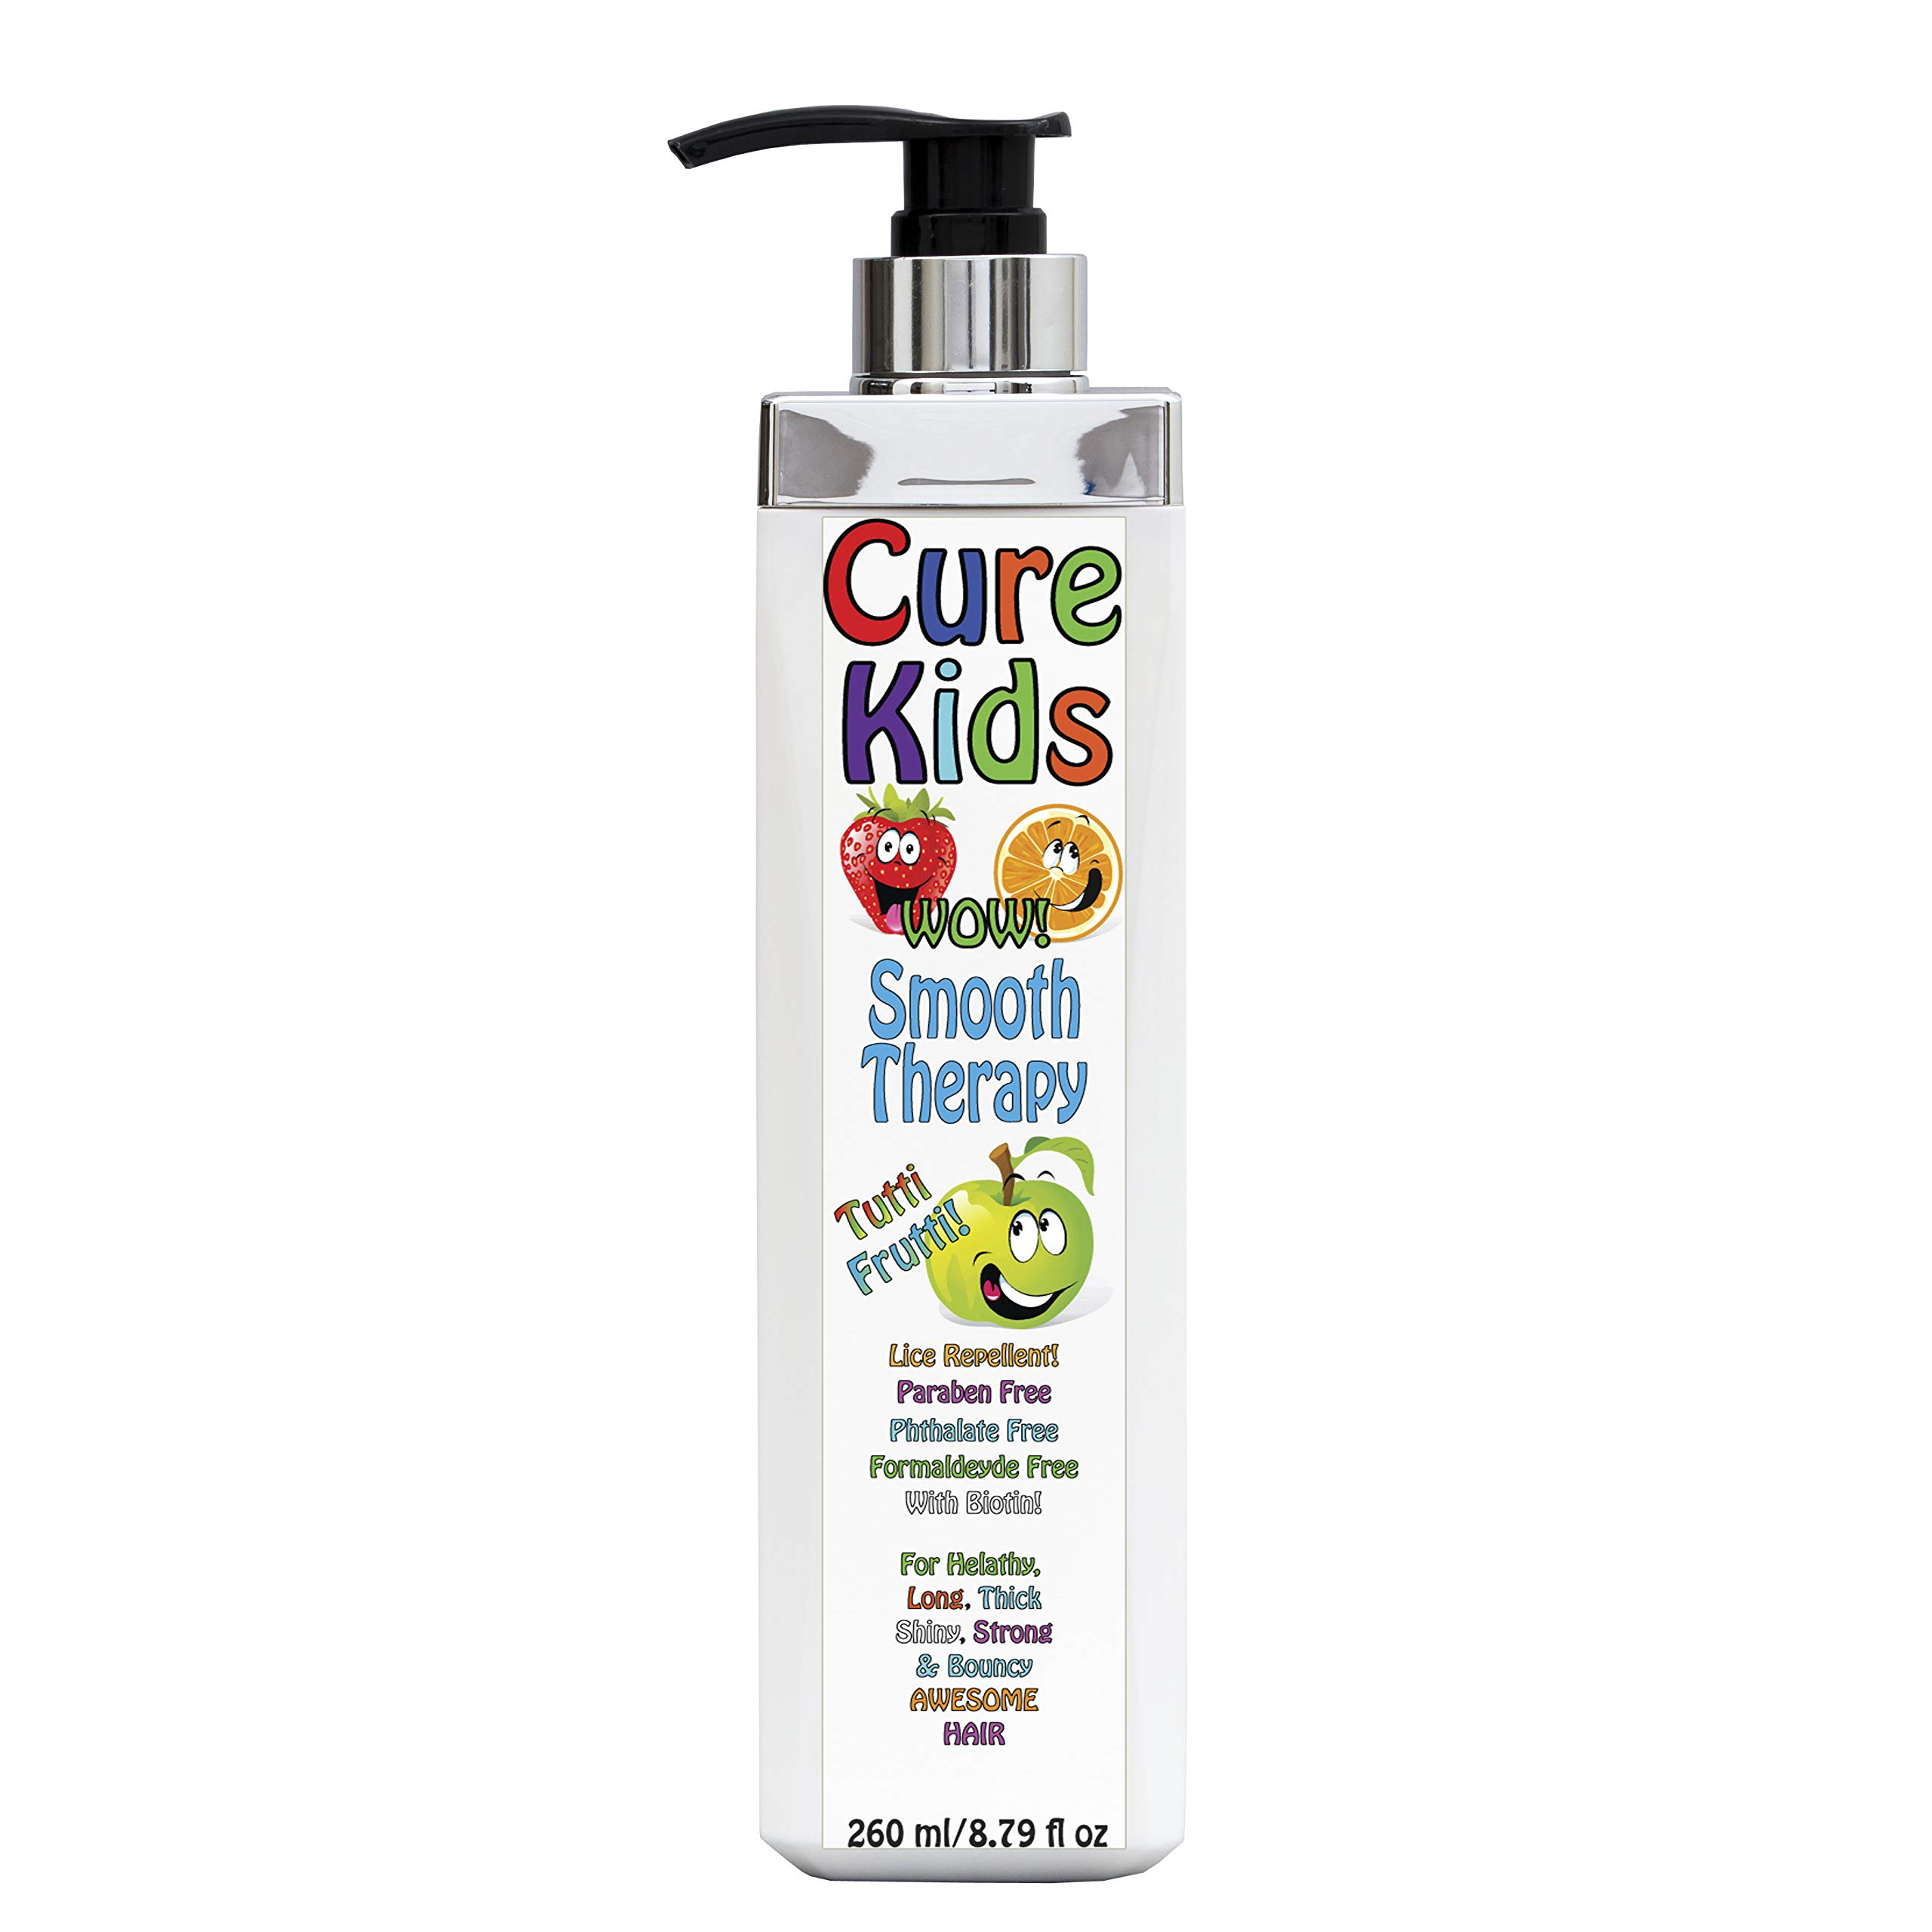 Cure Kids Wow! Smooth Therapy Silky Shiny Hair Treatment for your kids. Safe, Paraben Free, Lice Repellent. Swimmers Safe for all little ones children child baby babies hair (8 fl oz) by Keratin Cure